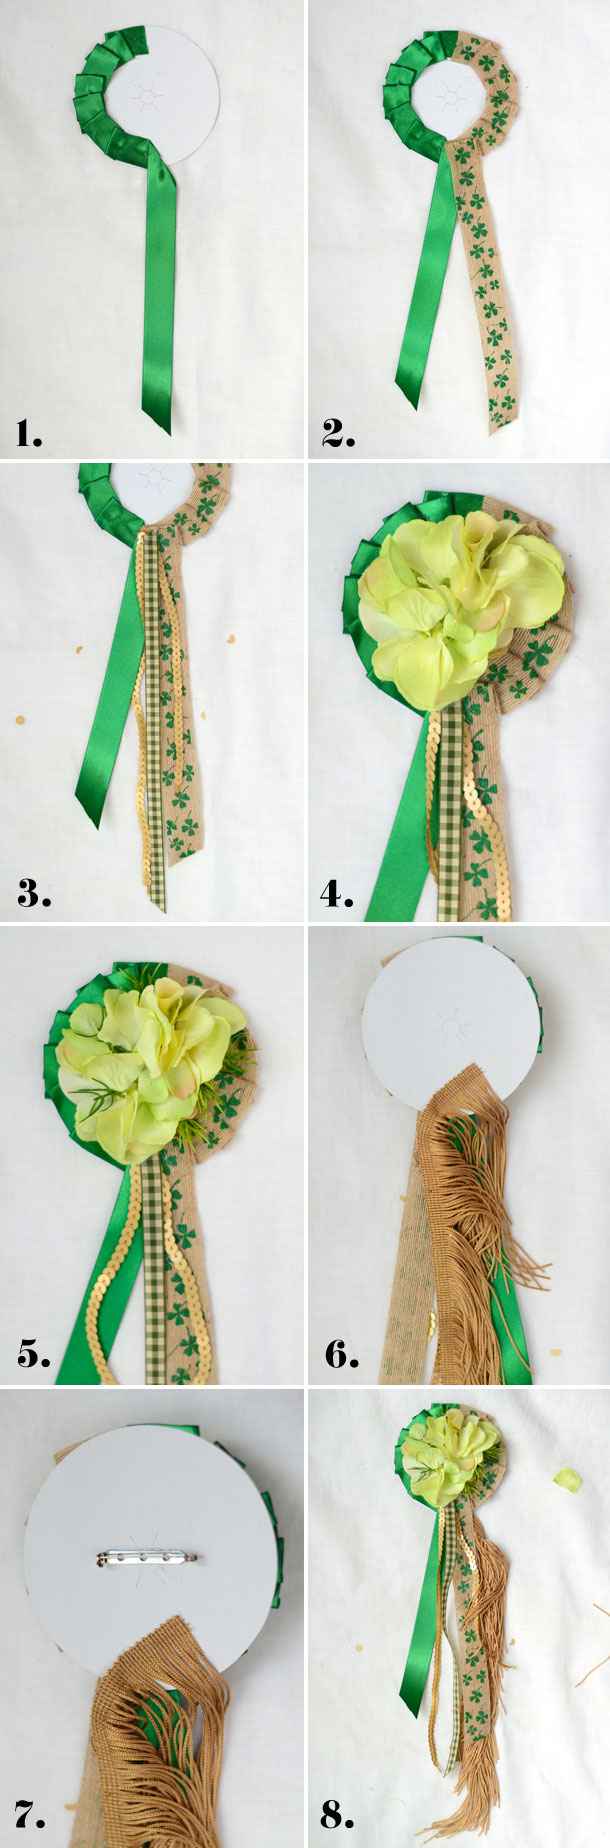 Lucky Charm Corsage for St. Patricks Day | Camille Styles